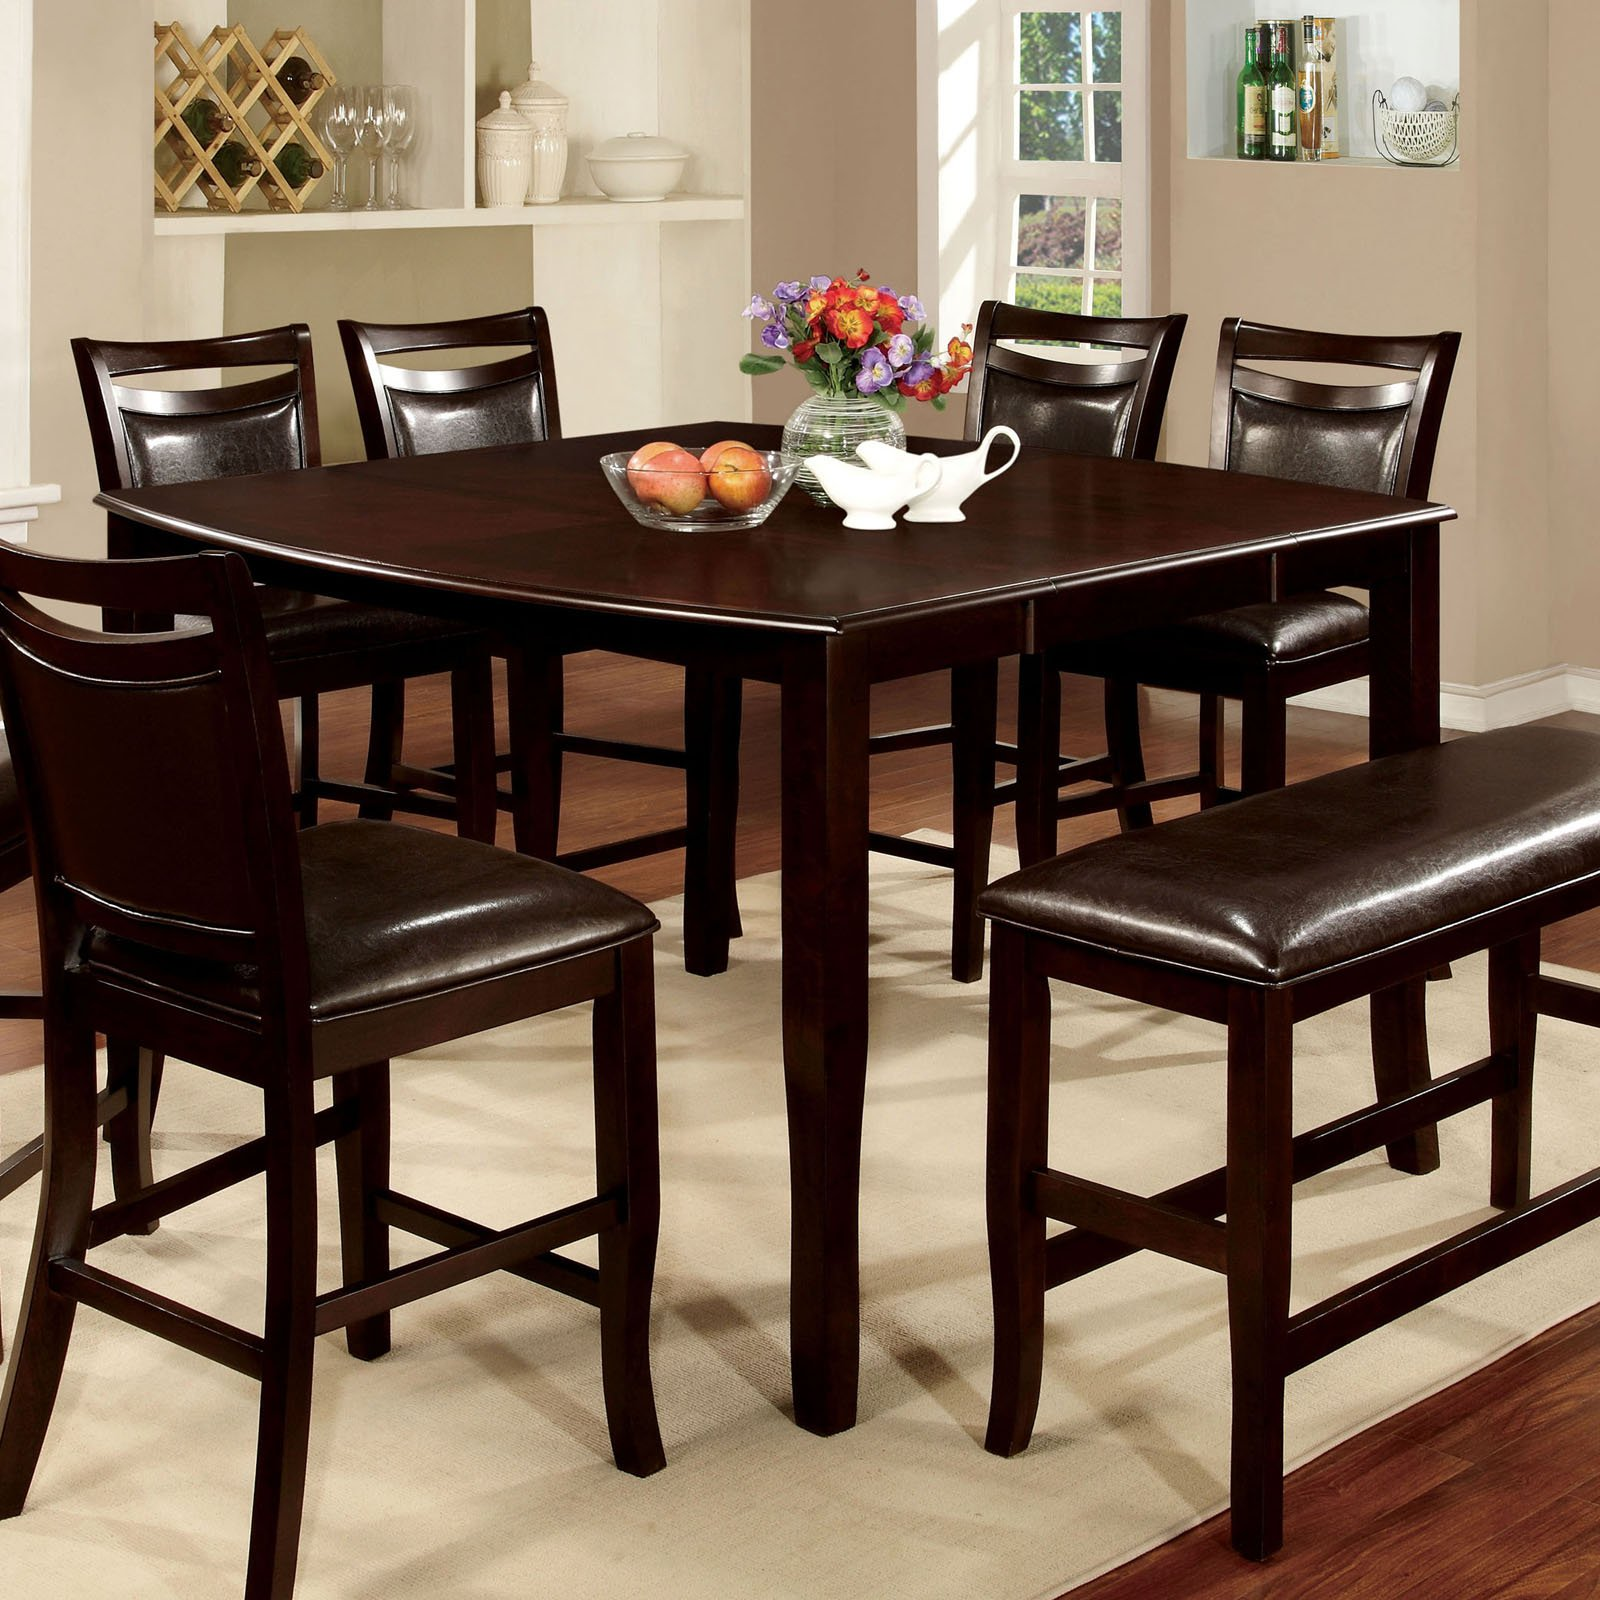 Furniture of america ridgeway square counter height dining table furniture of america ridgeway square counter height dining table walmart watchthetrailerfo